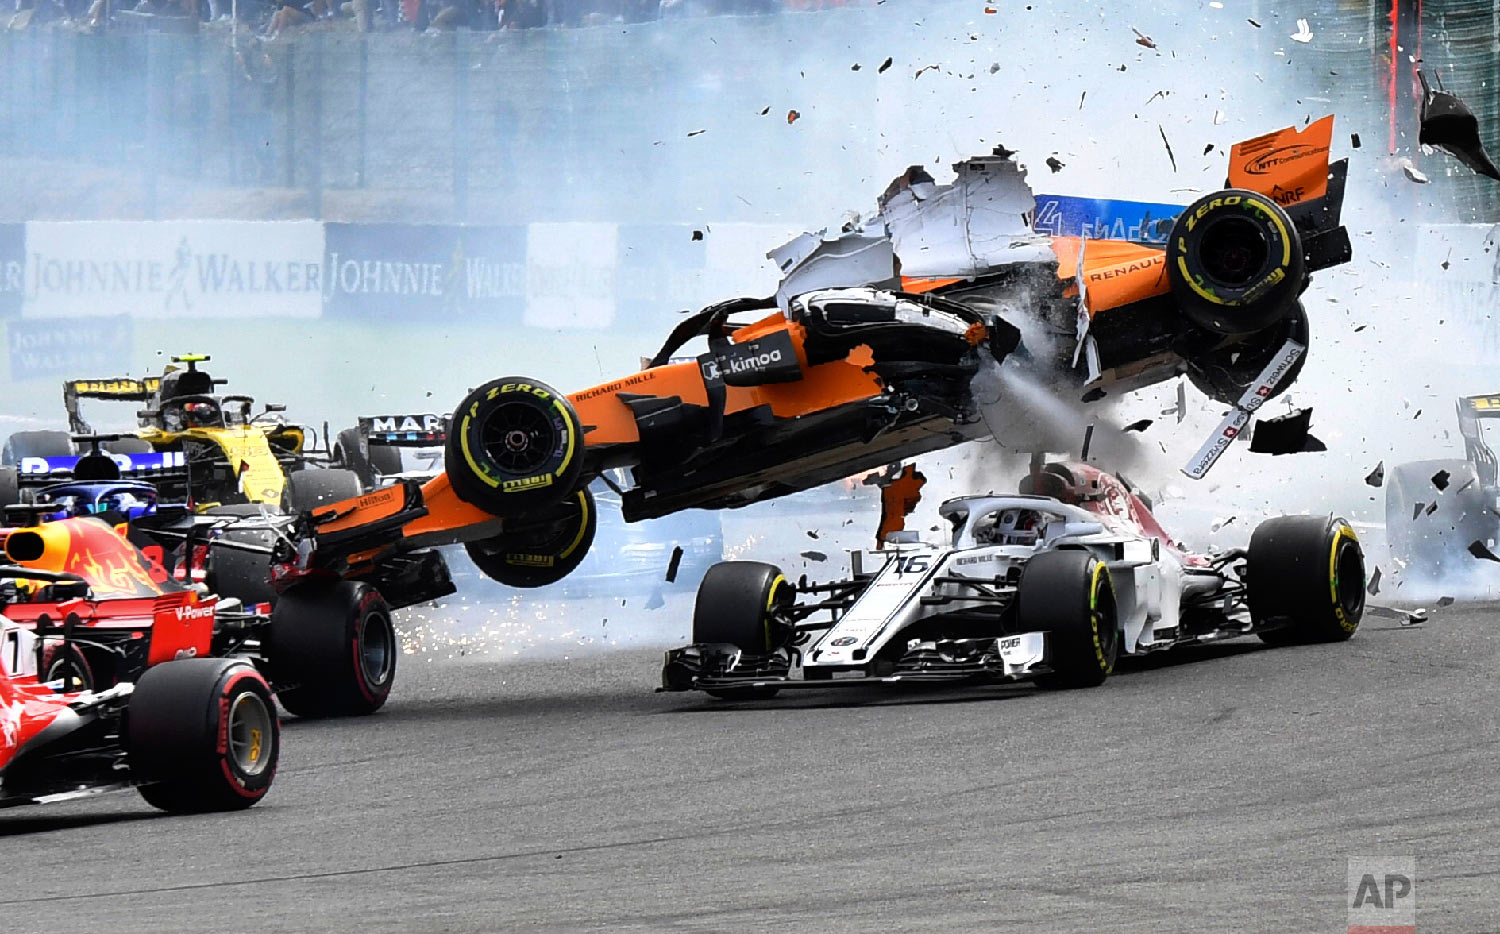 Mclaren driver Fernando Alonso of Spain goes over the top of Sauber driver Charles Leclerc of Monaco at the start of the Belgian Formula One Grand Prix in Spa-Francorchamps, Belgium, on Aug. 26, 2018. (AP Photo/Geert Vanden Wijngaert)